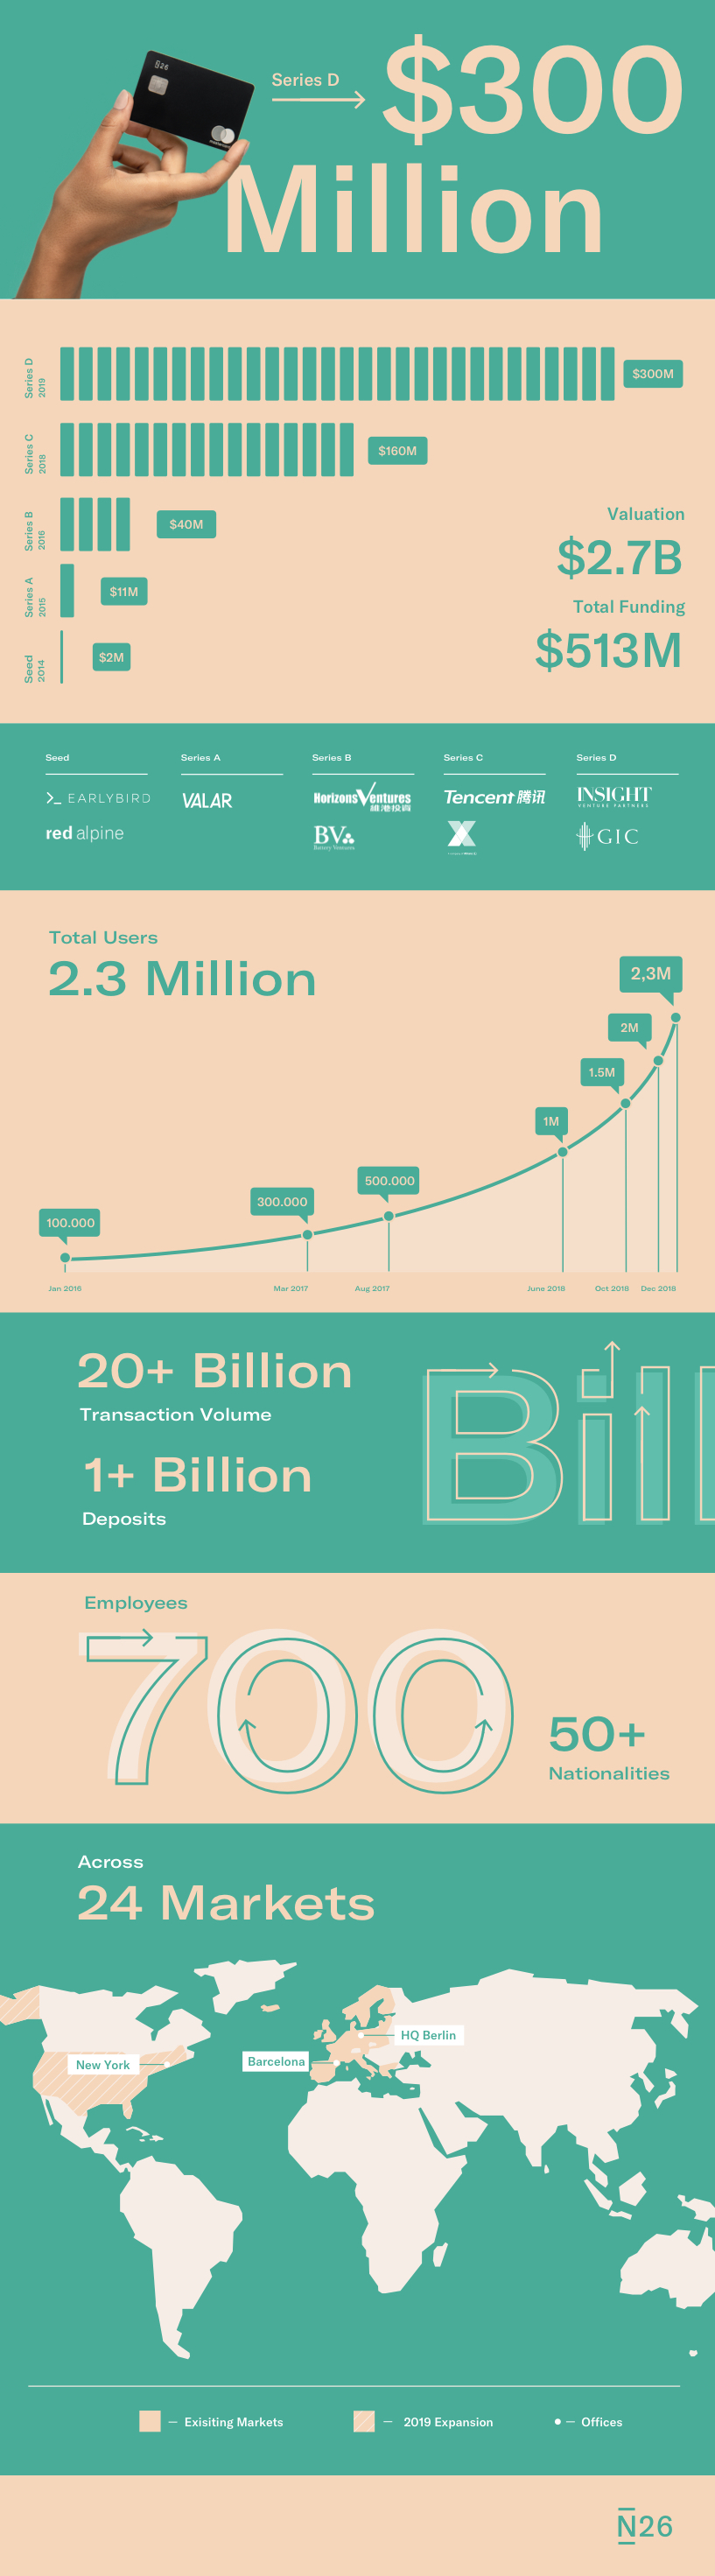 Infographic N26 Series D Funding Round